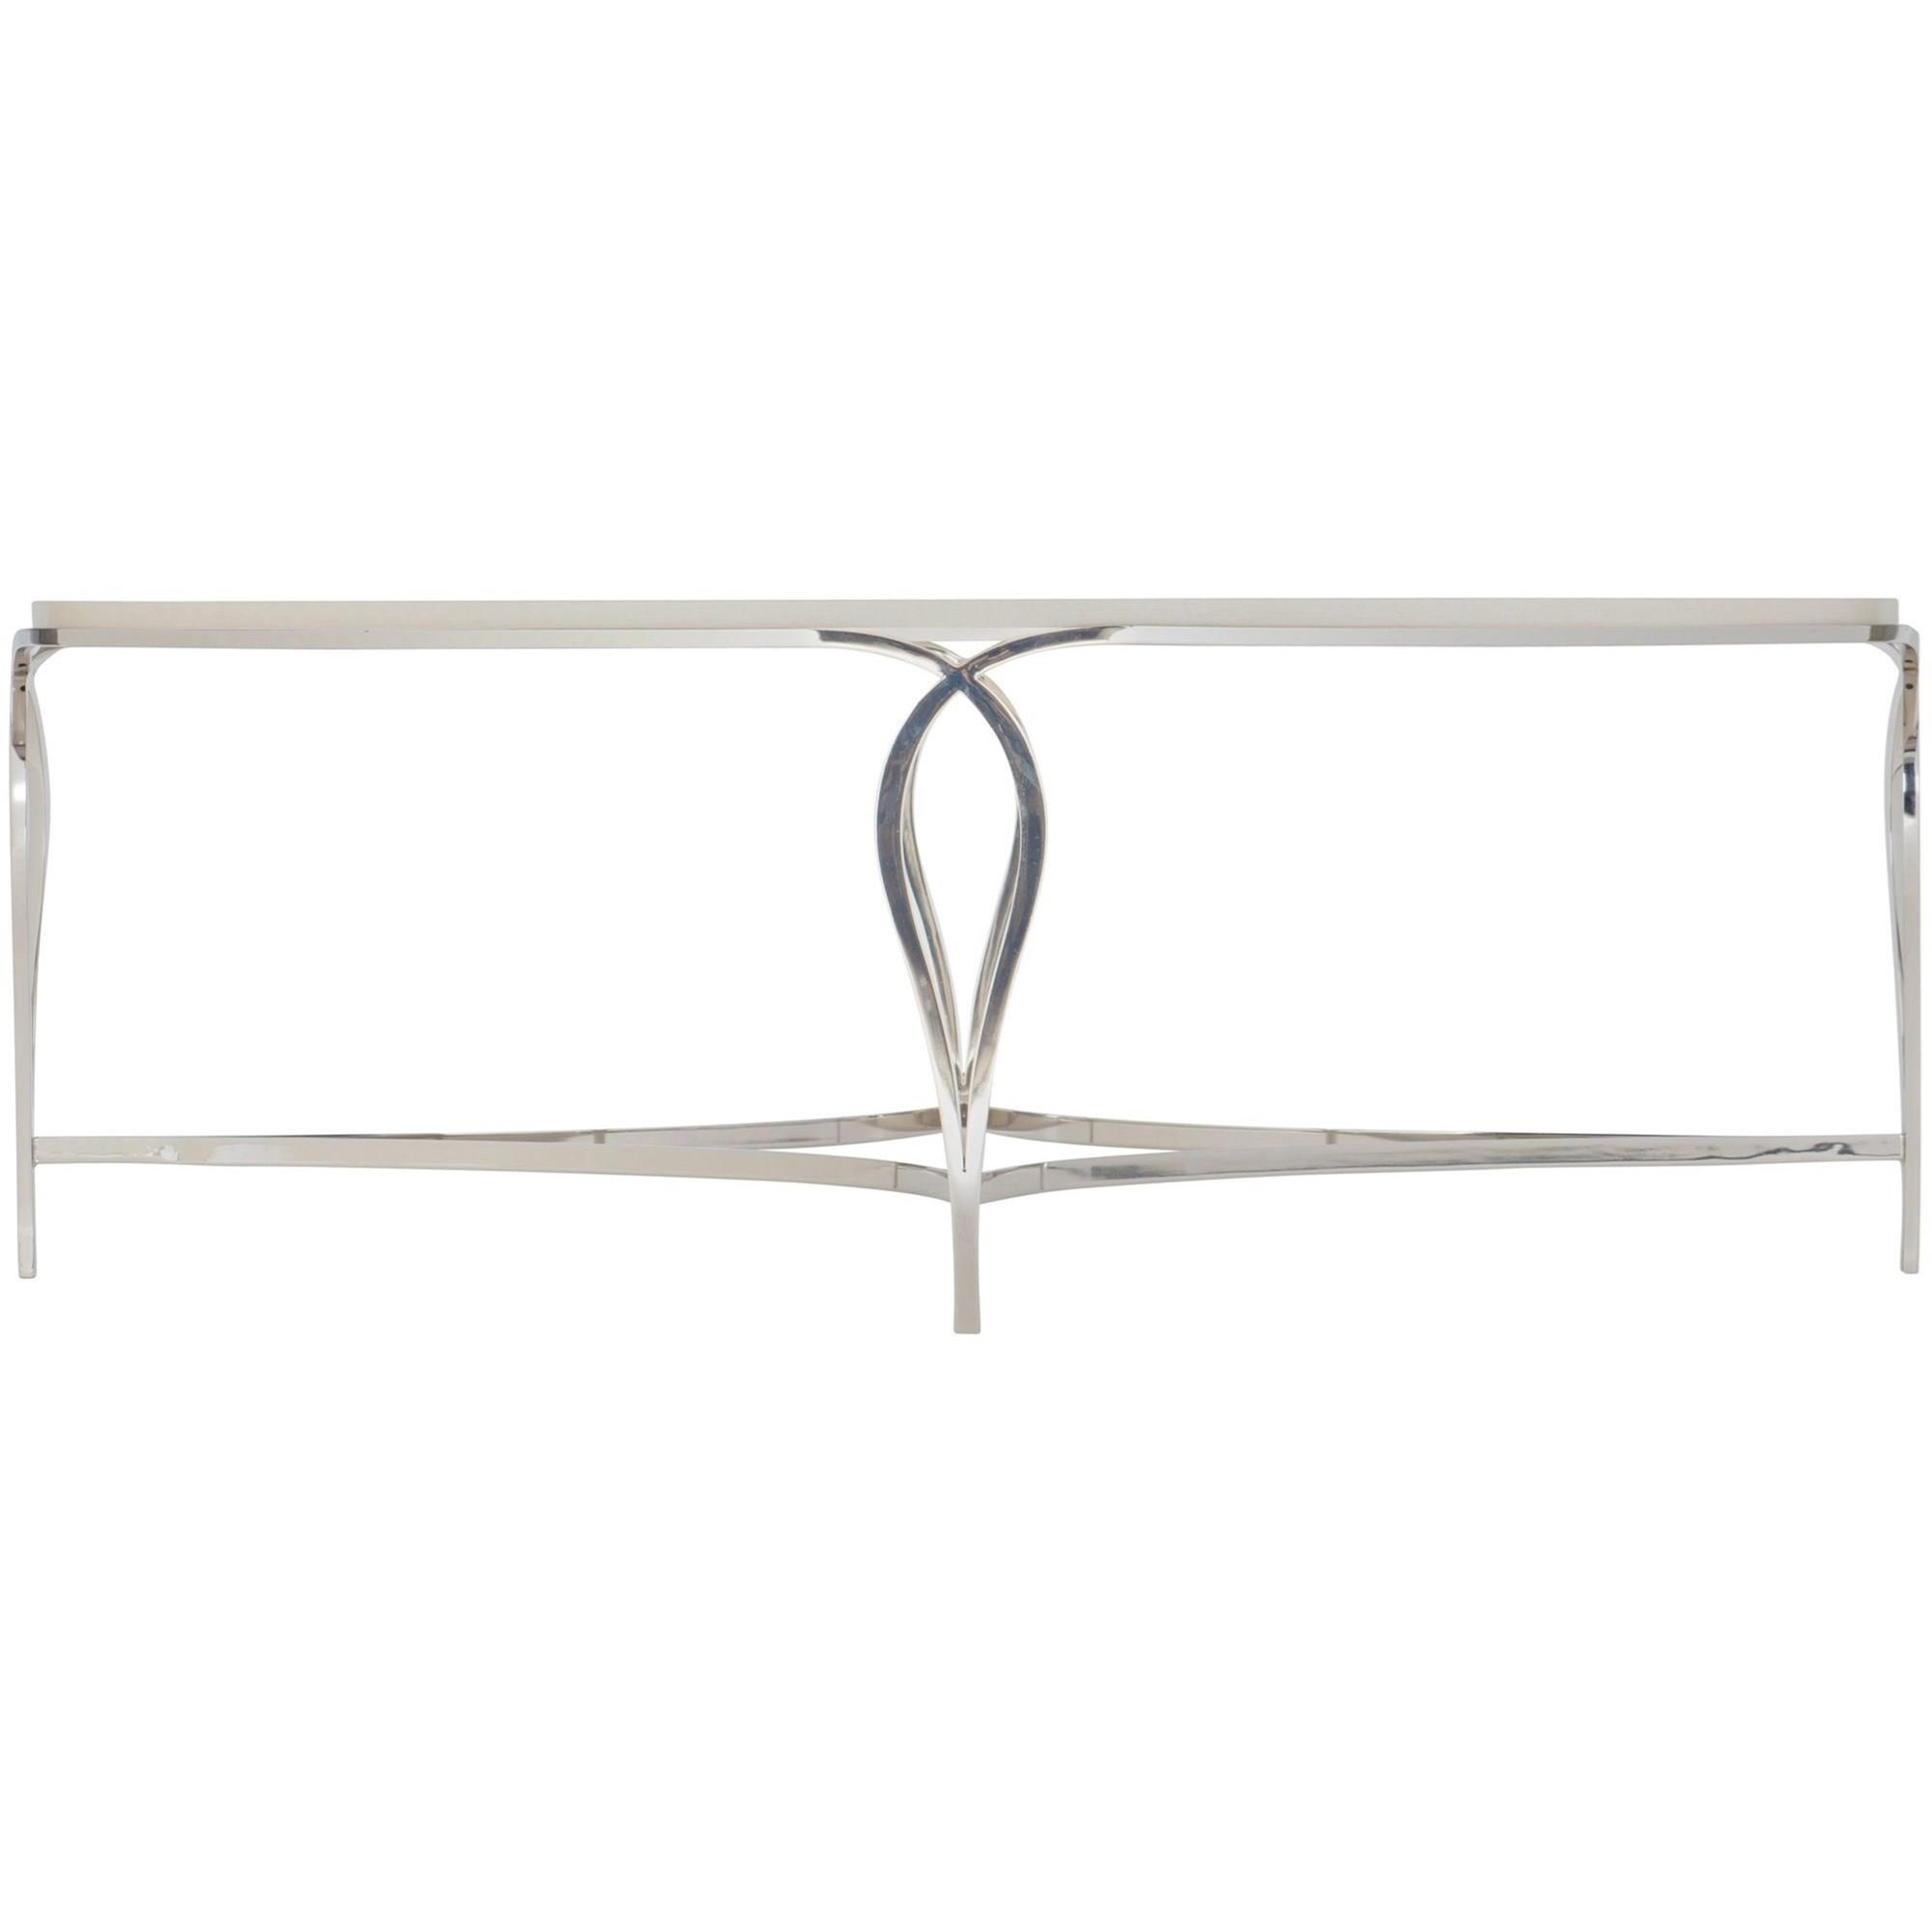 Transitional Demilune Console Table with Metal Base and Wood Top